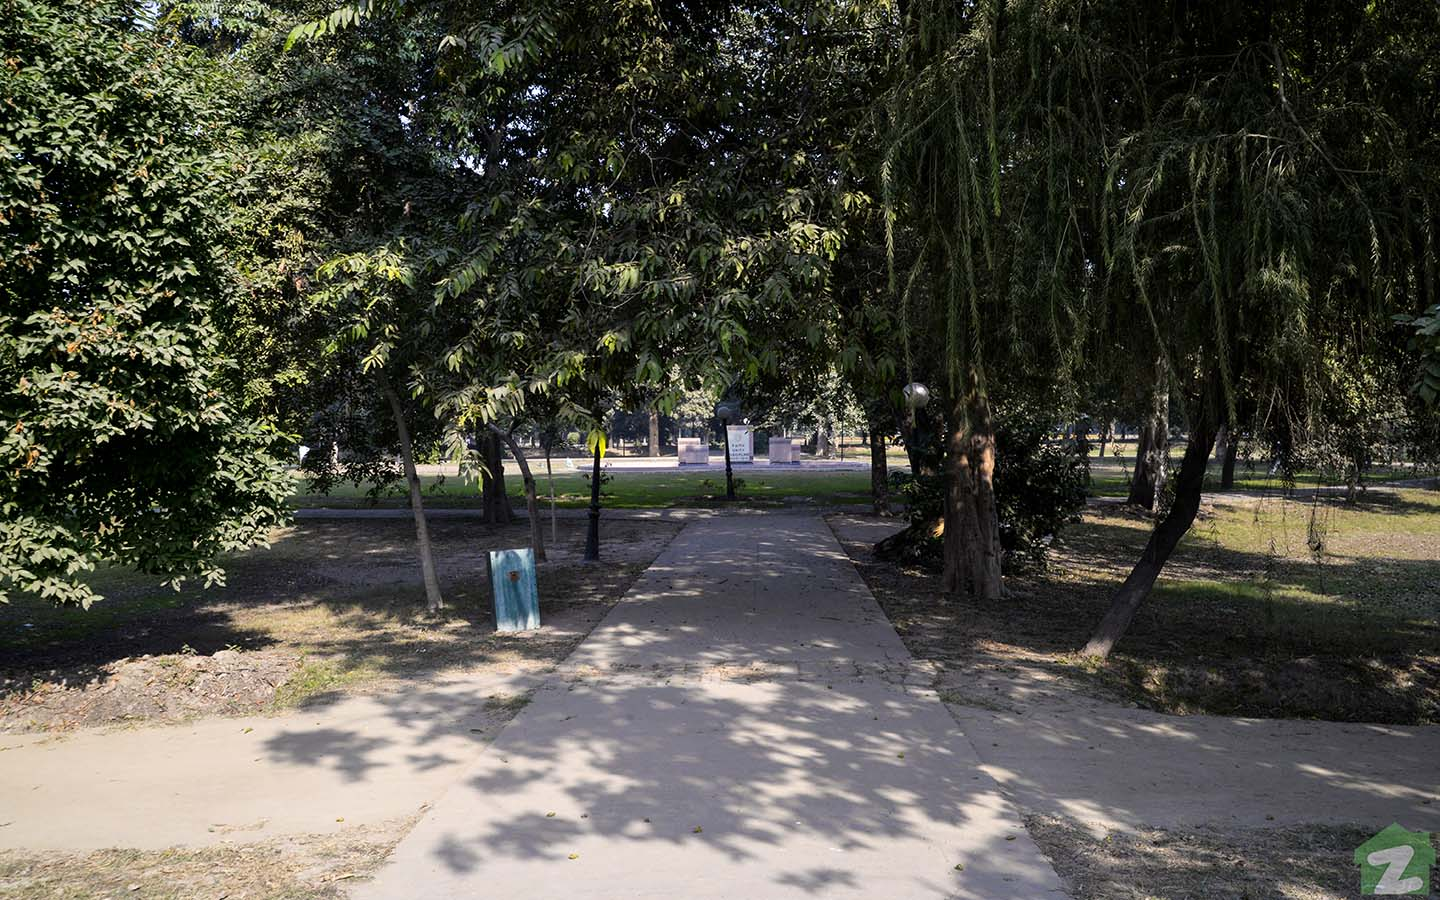 One of the community parks in the neighbourhood.